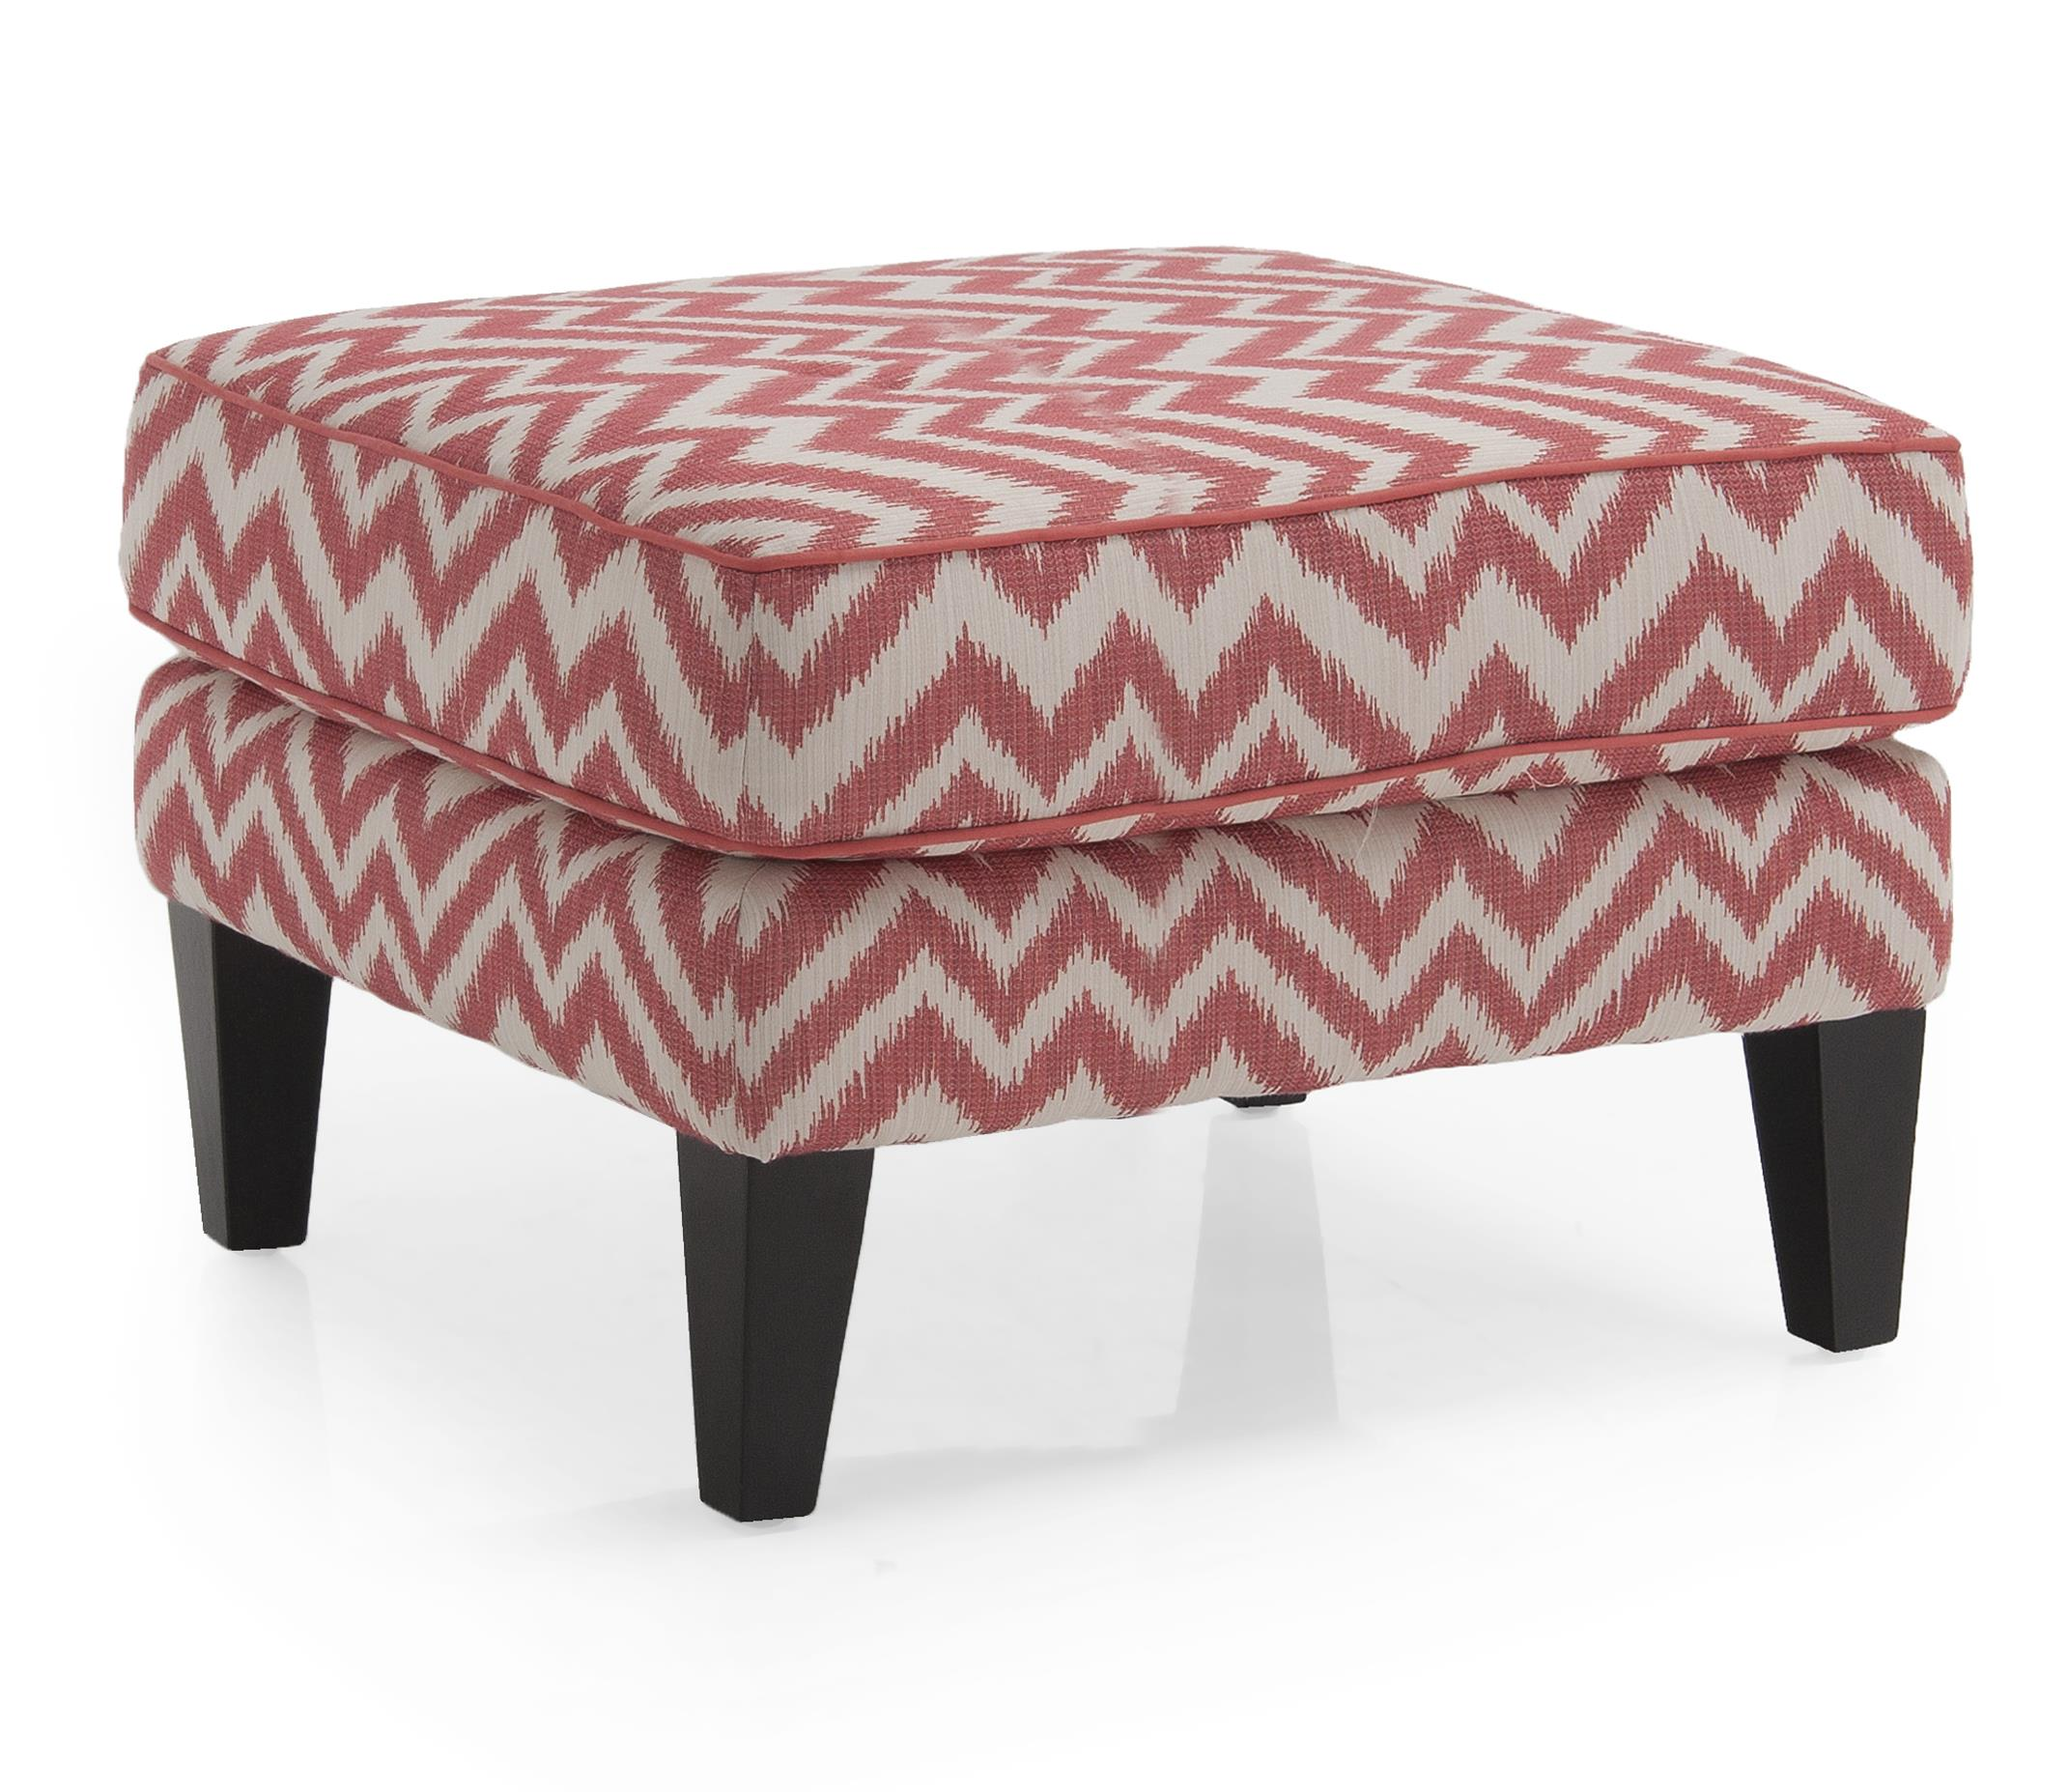 2825 Ottoman by Decor-Rest at Reid's Furniture